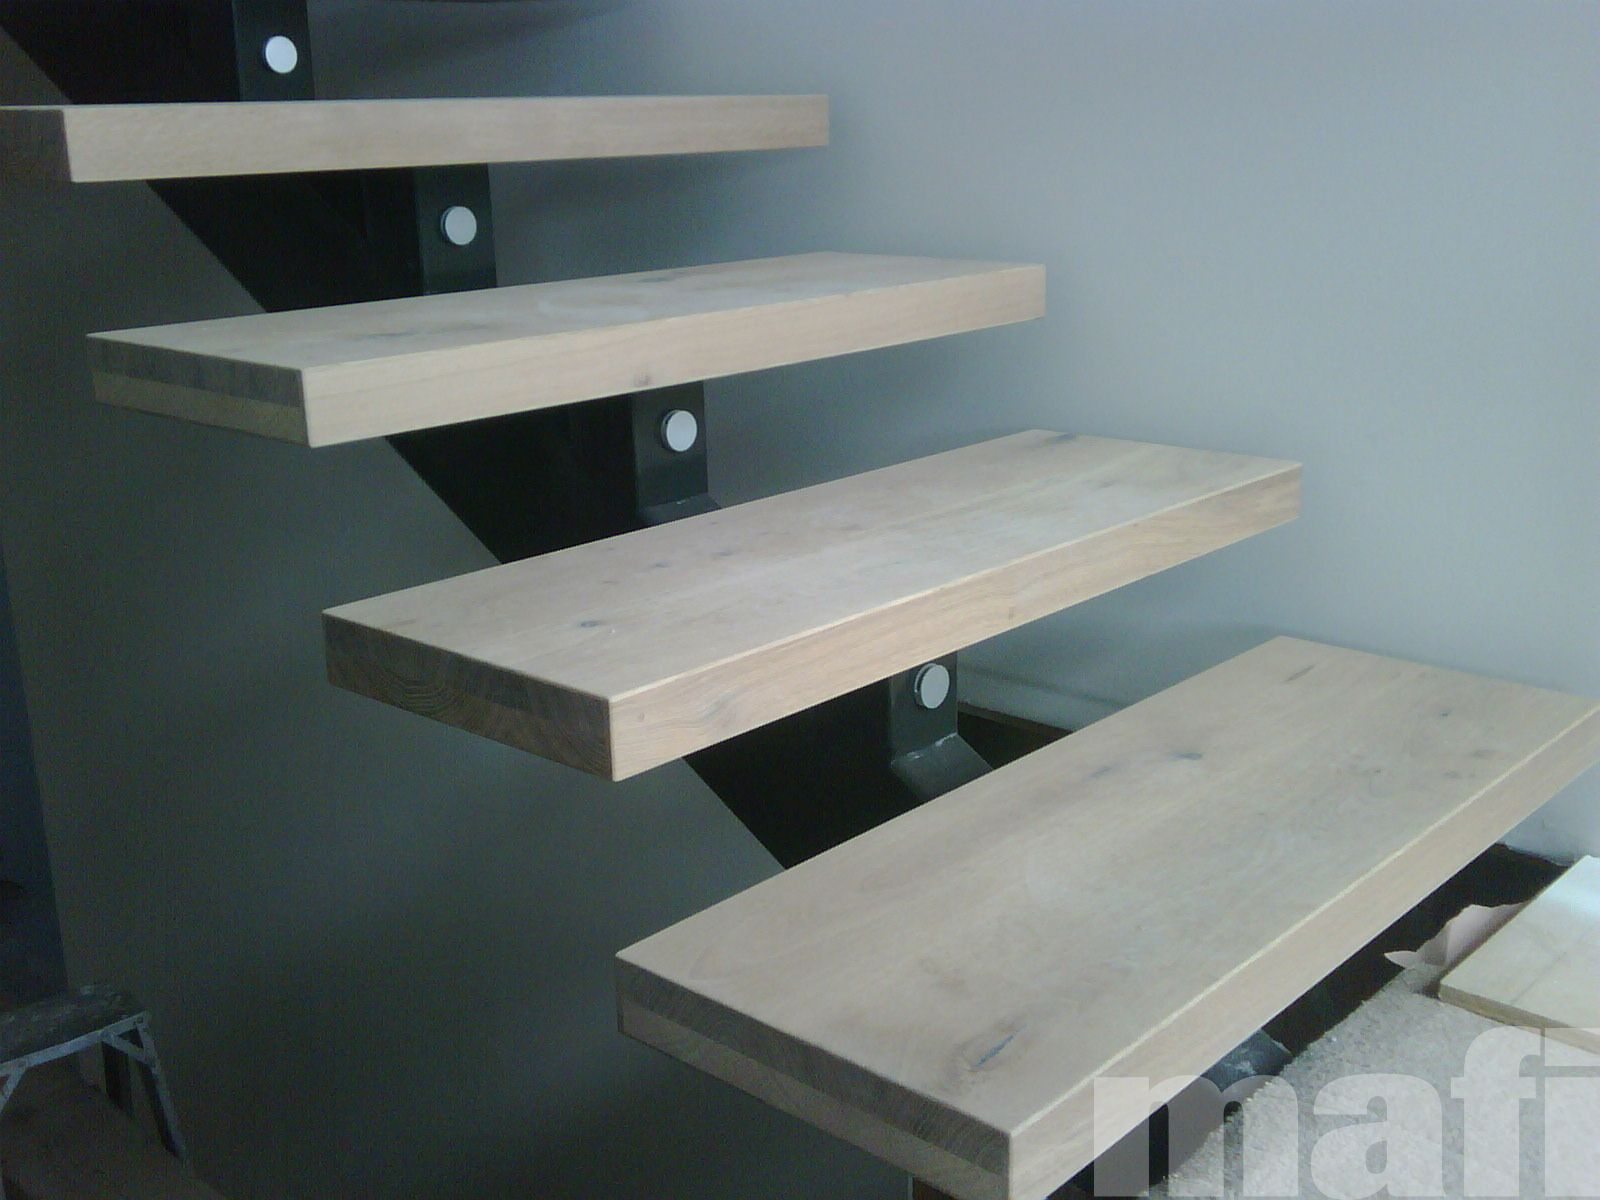 Prefab Steel Stairs See Deck Railing Ideas At Http://awoodrailing.com